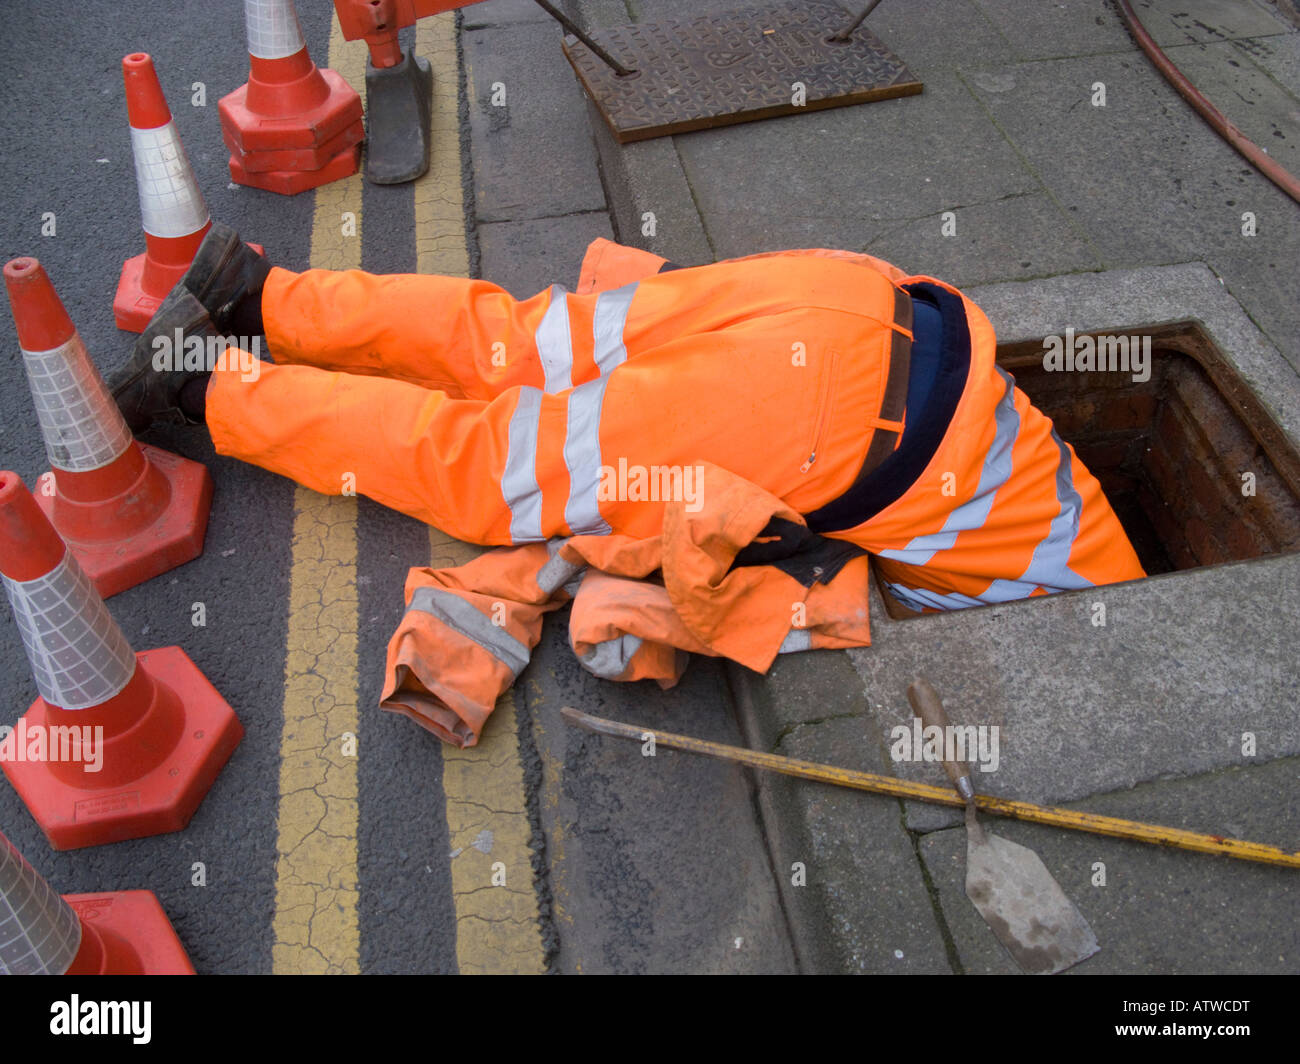 Dyno Rod Worker Wearing Orange Overalls Head First Down A